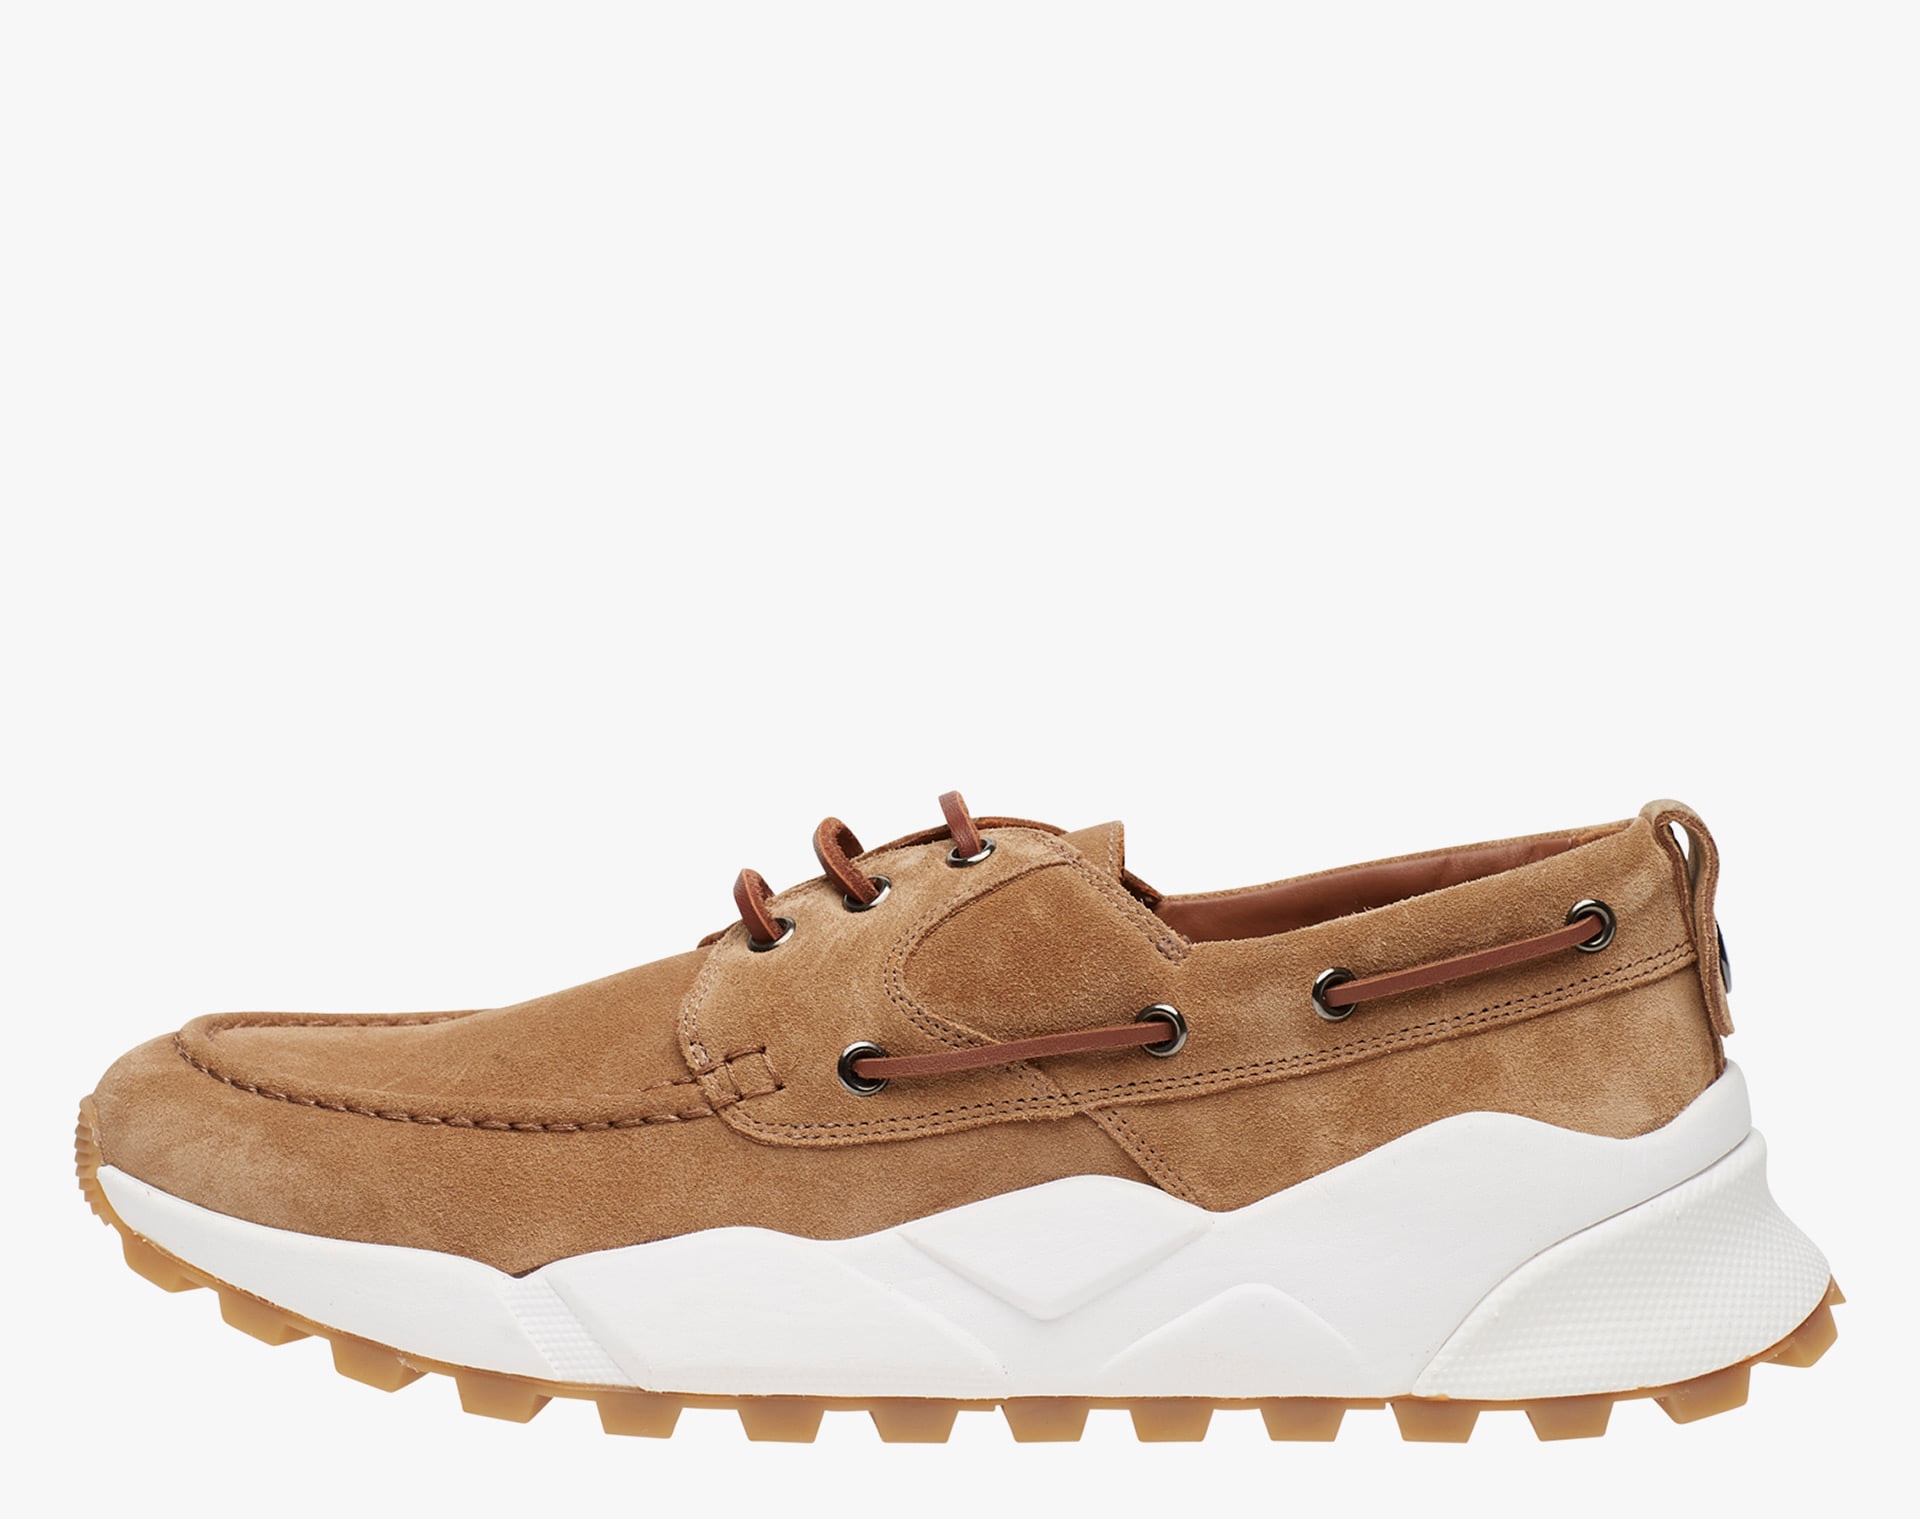 EXTREEMER - Sneaker sailor in suede - Tabacco